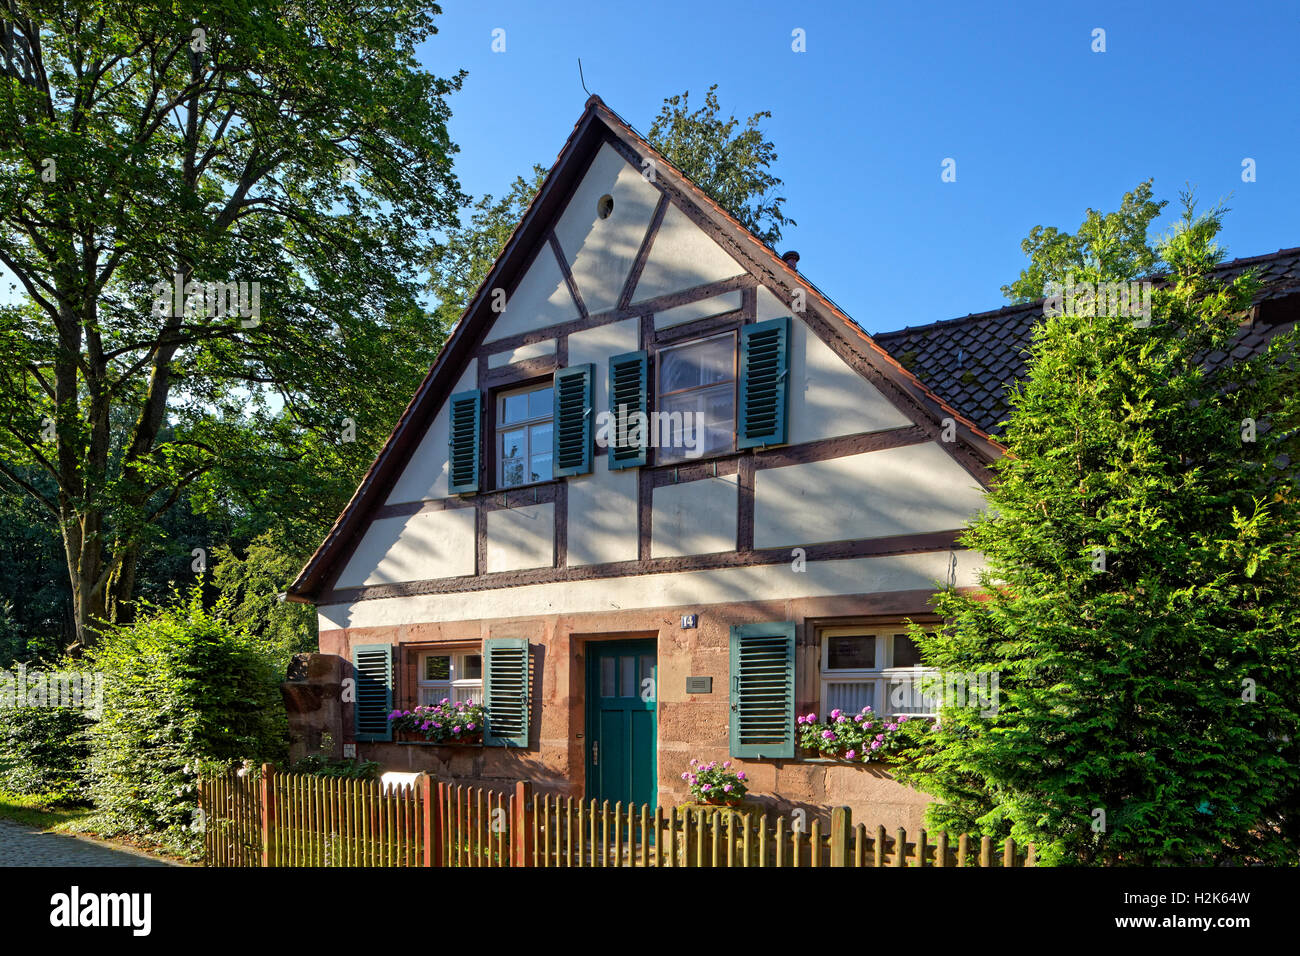 Worker's house, half-timbered building, Historic factory Hammer, Laufamholz, Nuremberg, Middle Franconia, Franconia, - Stock Image